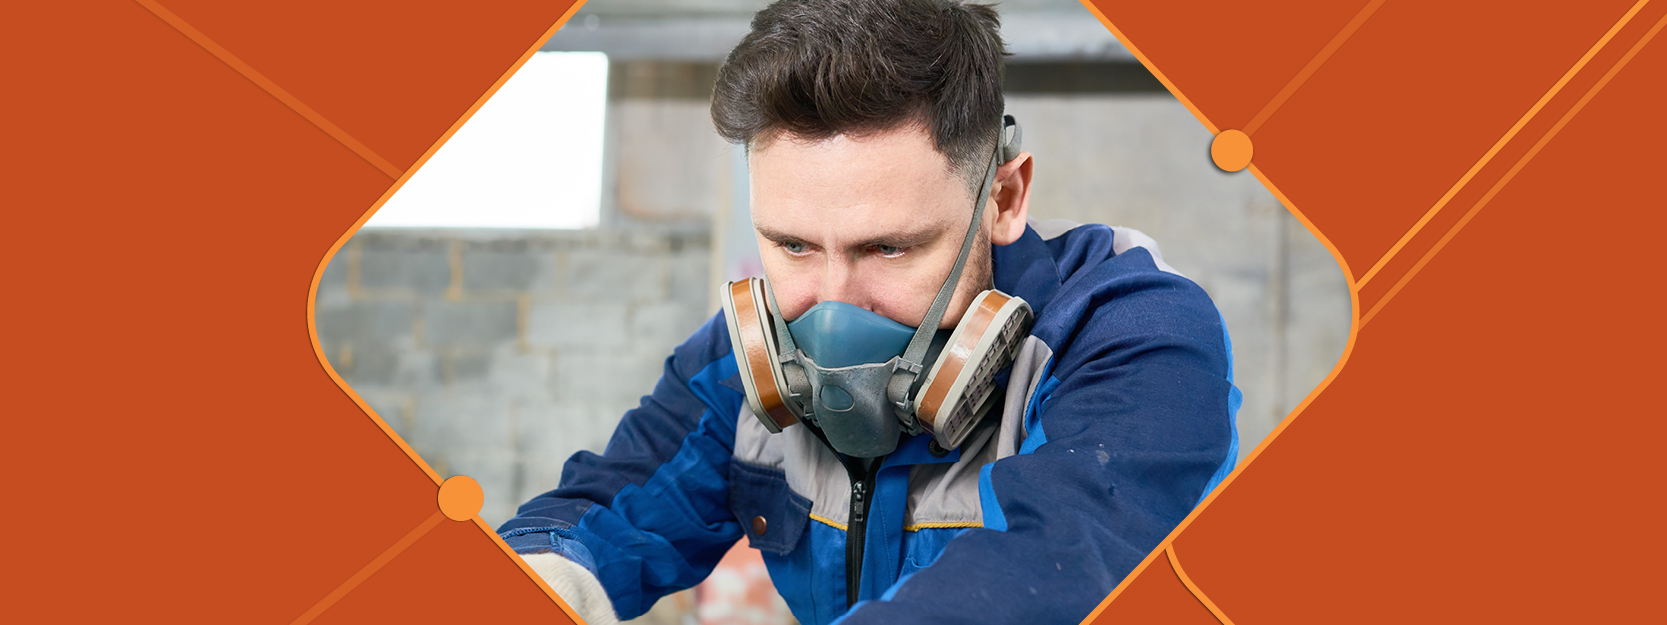 Face fitting masks – The importance of safety in construction